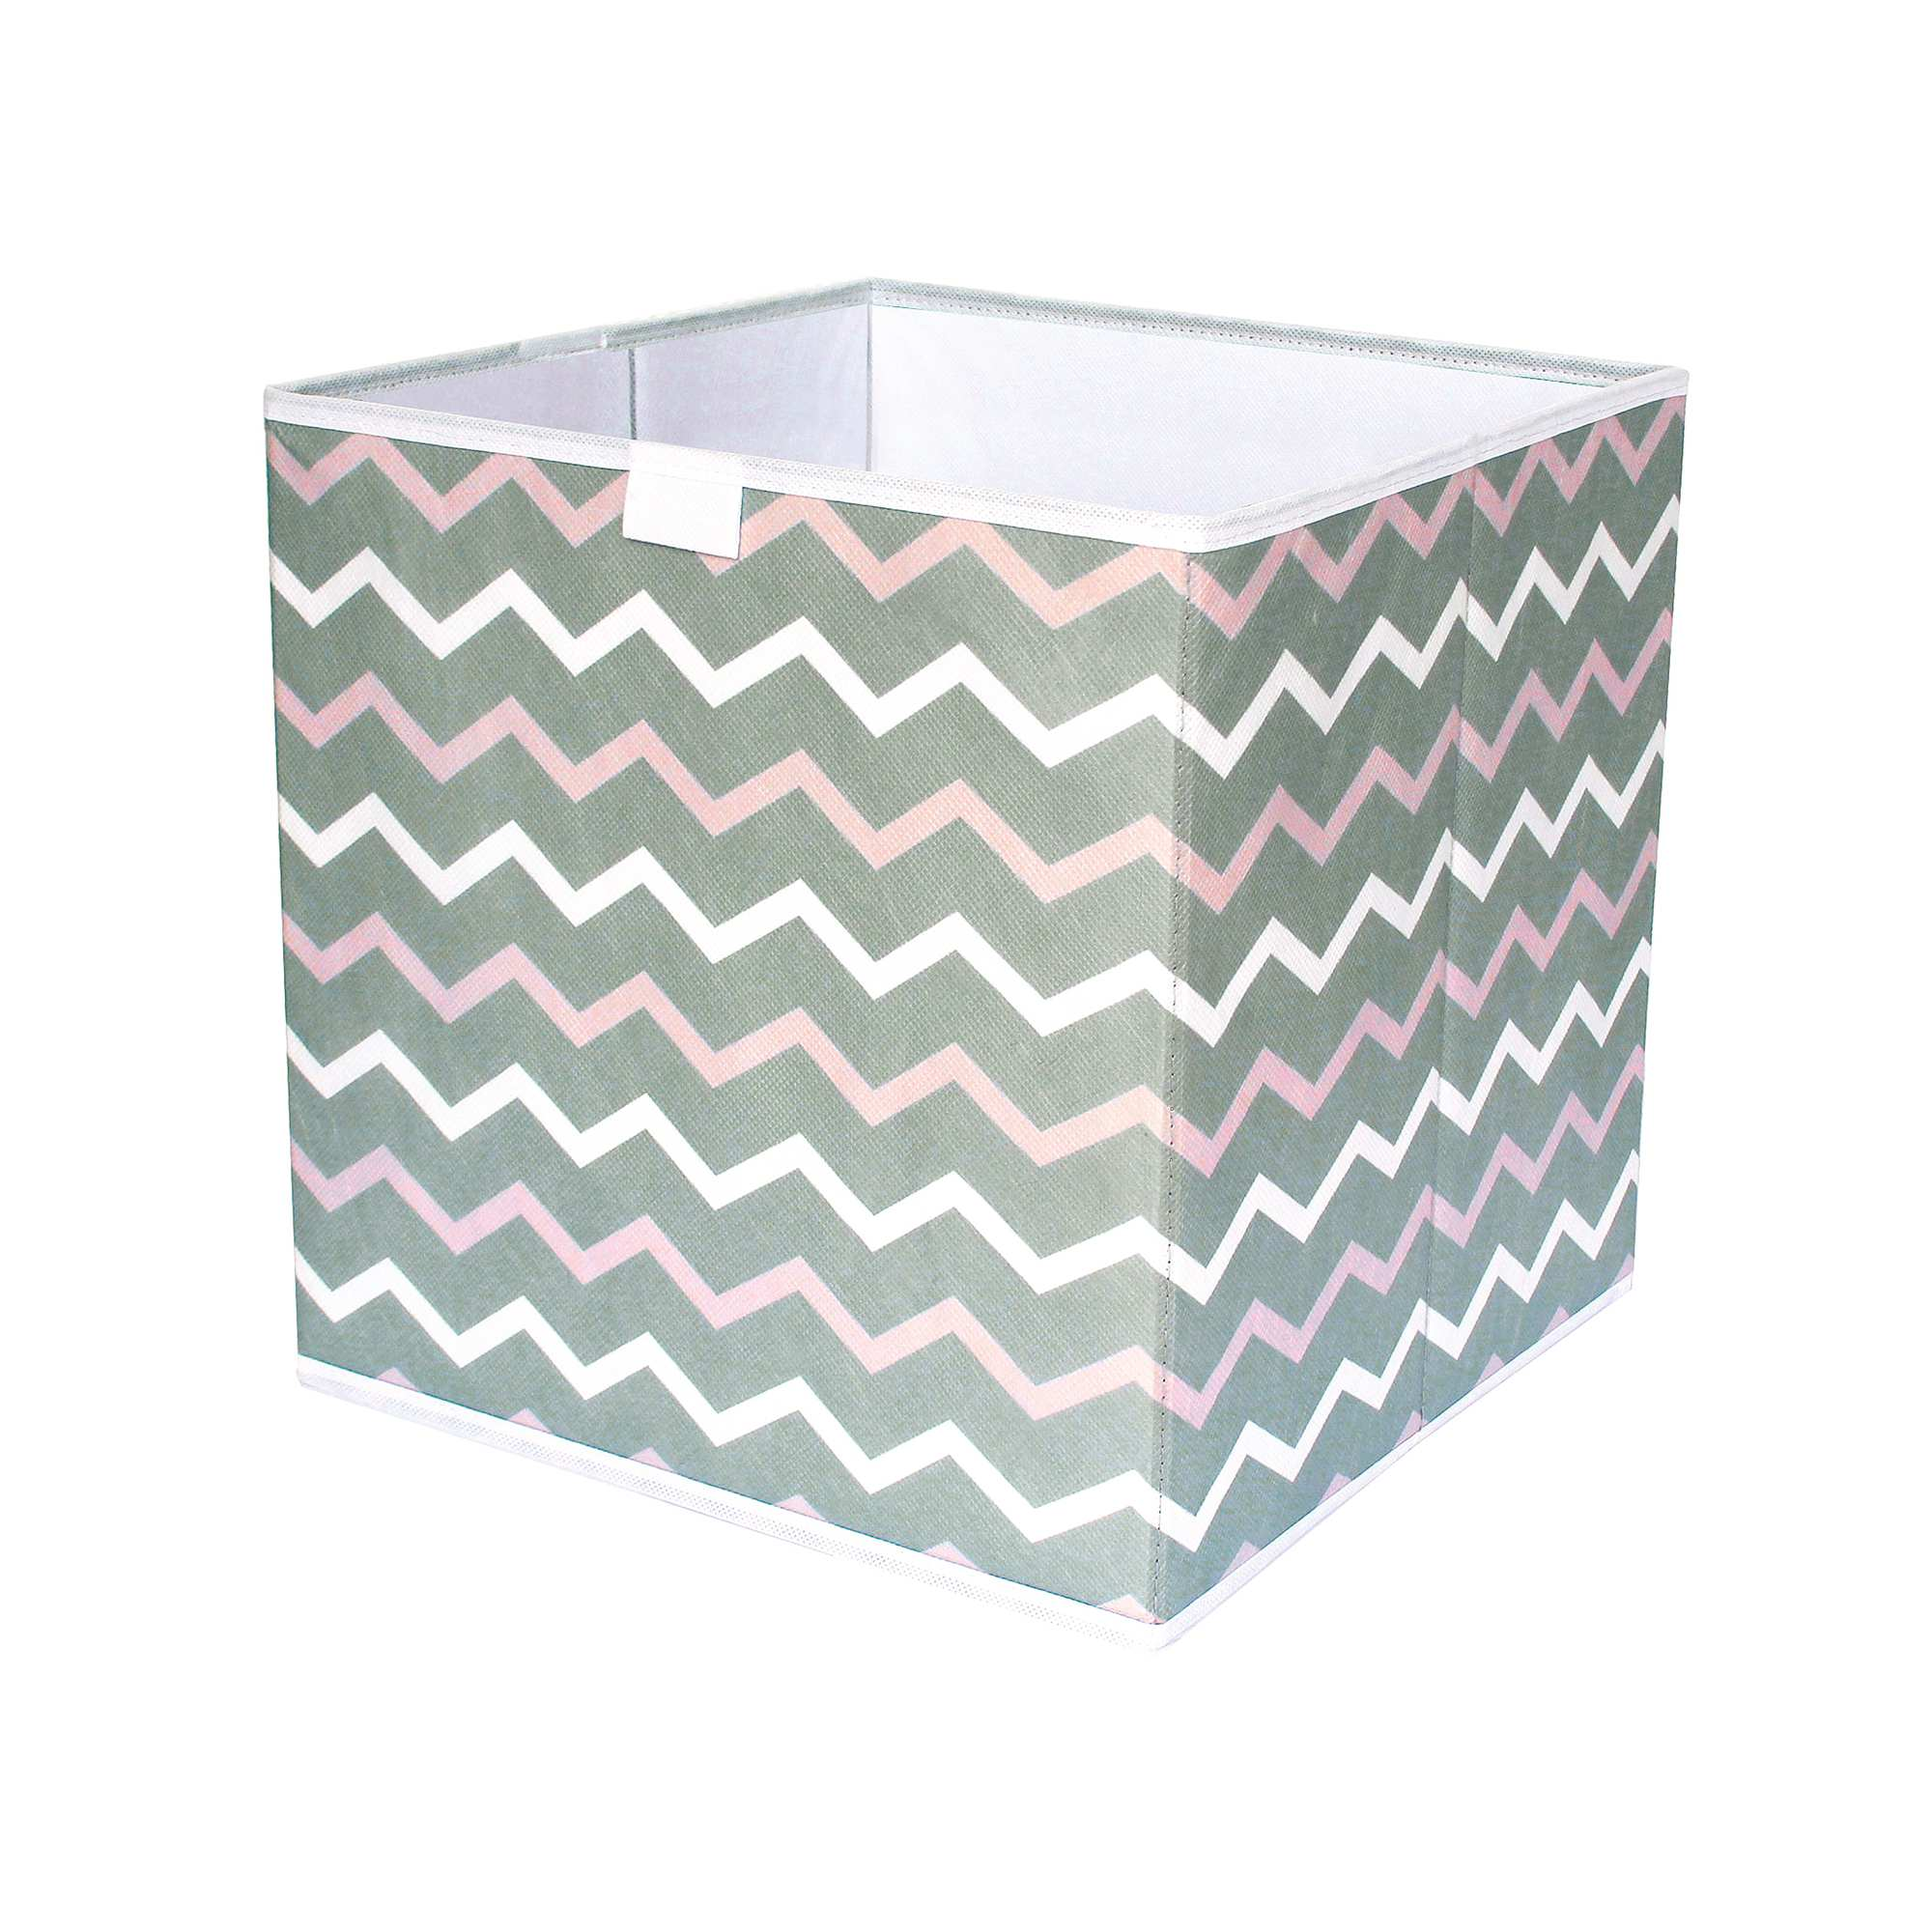 cube de rangement pliable imprim 39 zigzag 39 linge de lit blanc rose taupe kiabi 4 00. Black Bedroom Furniture Sets. Home Design Ideas